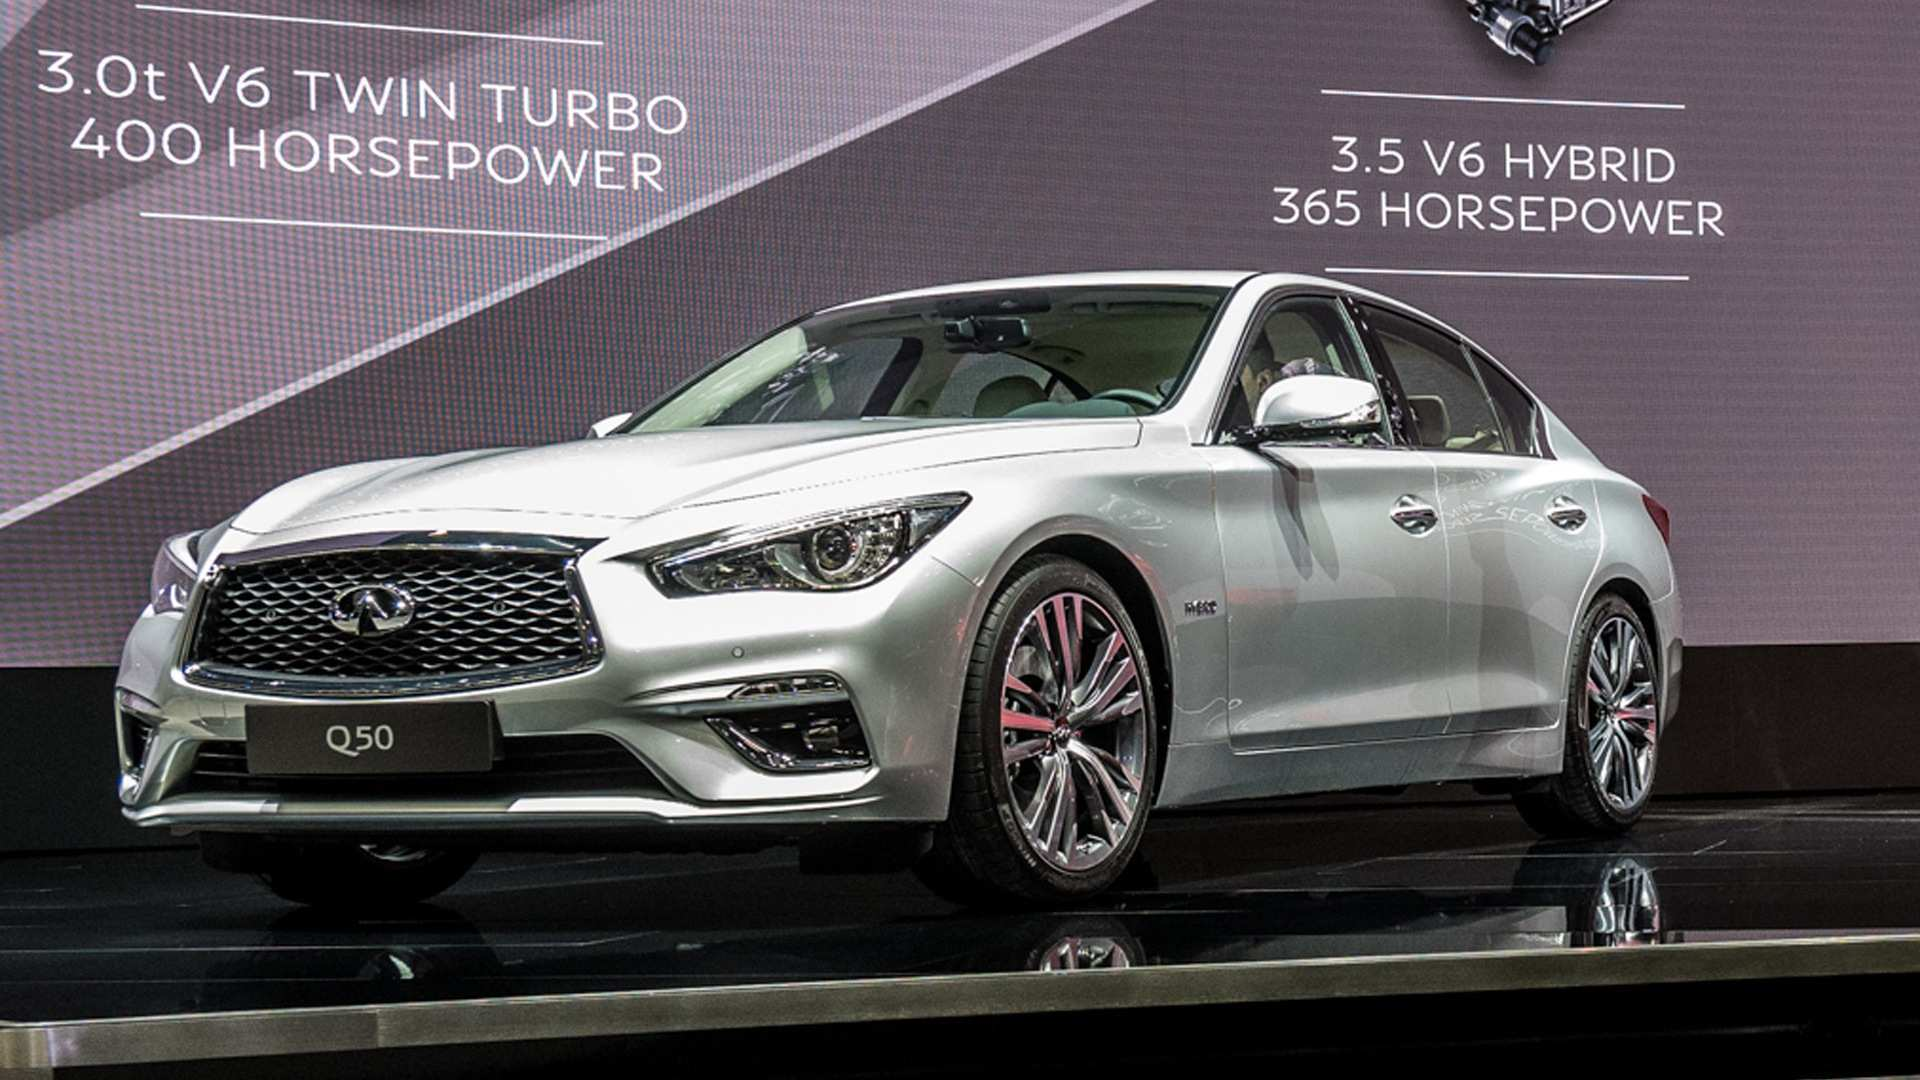 43 New 2020 Infiniti Qx50 Luxe New Concept Price with 2020 Infiniti Qx50 Luxe New Concept